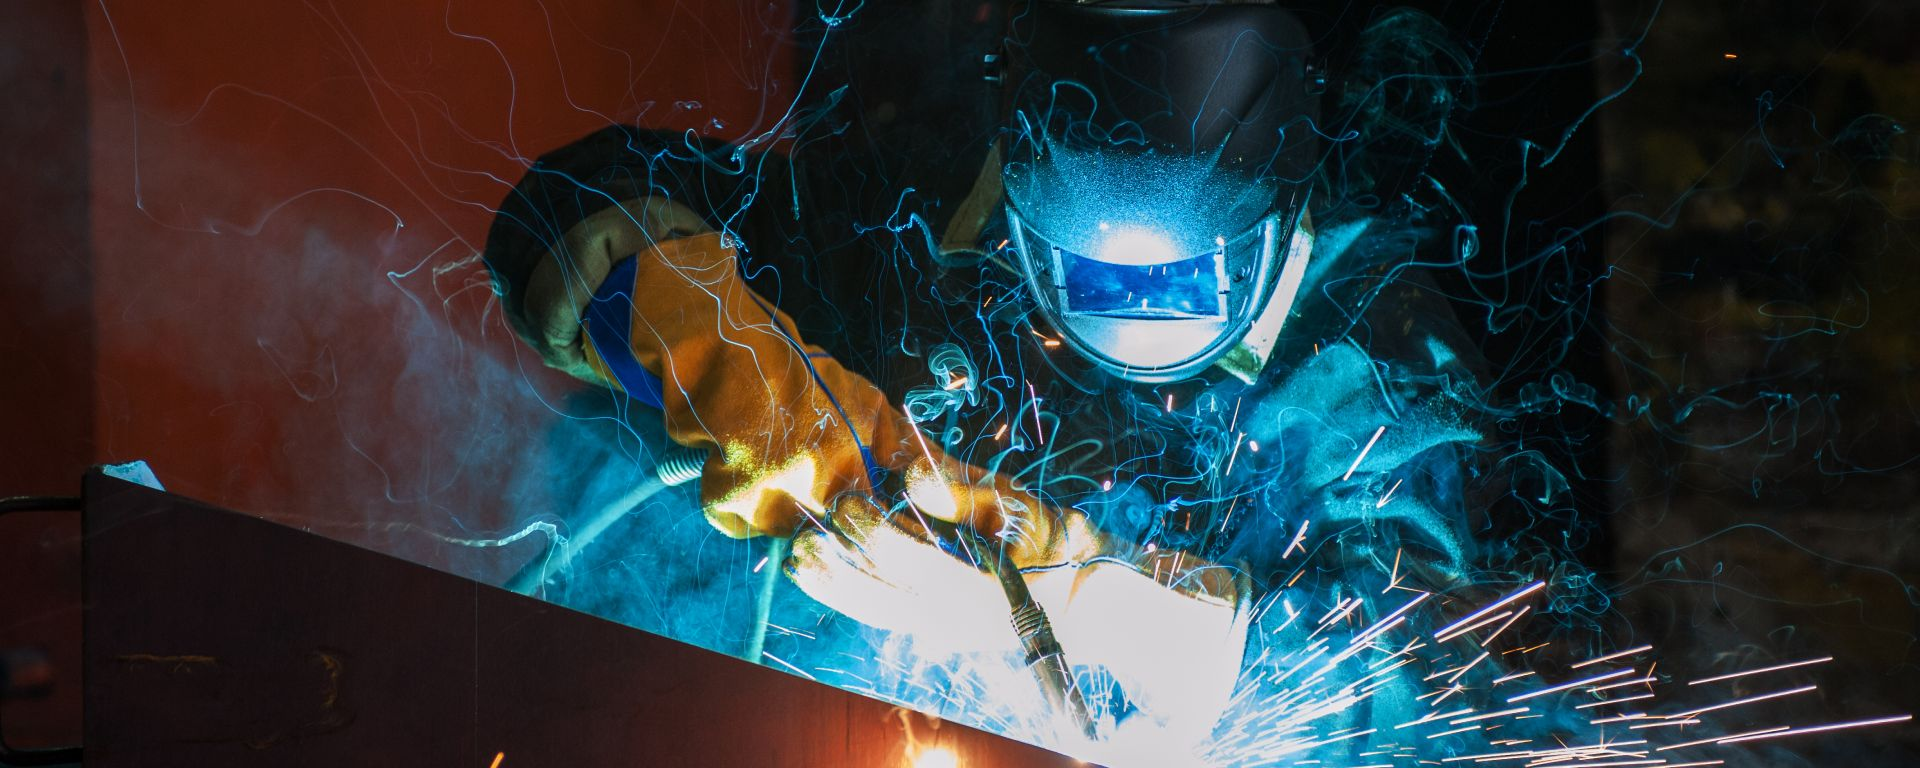 MySep | Welding to fabricate equipment